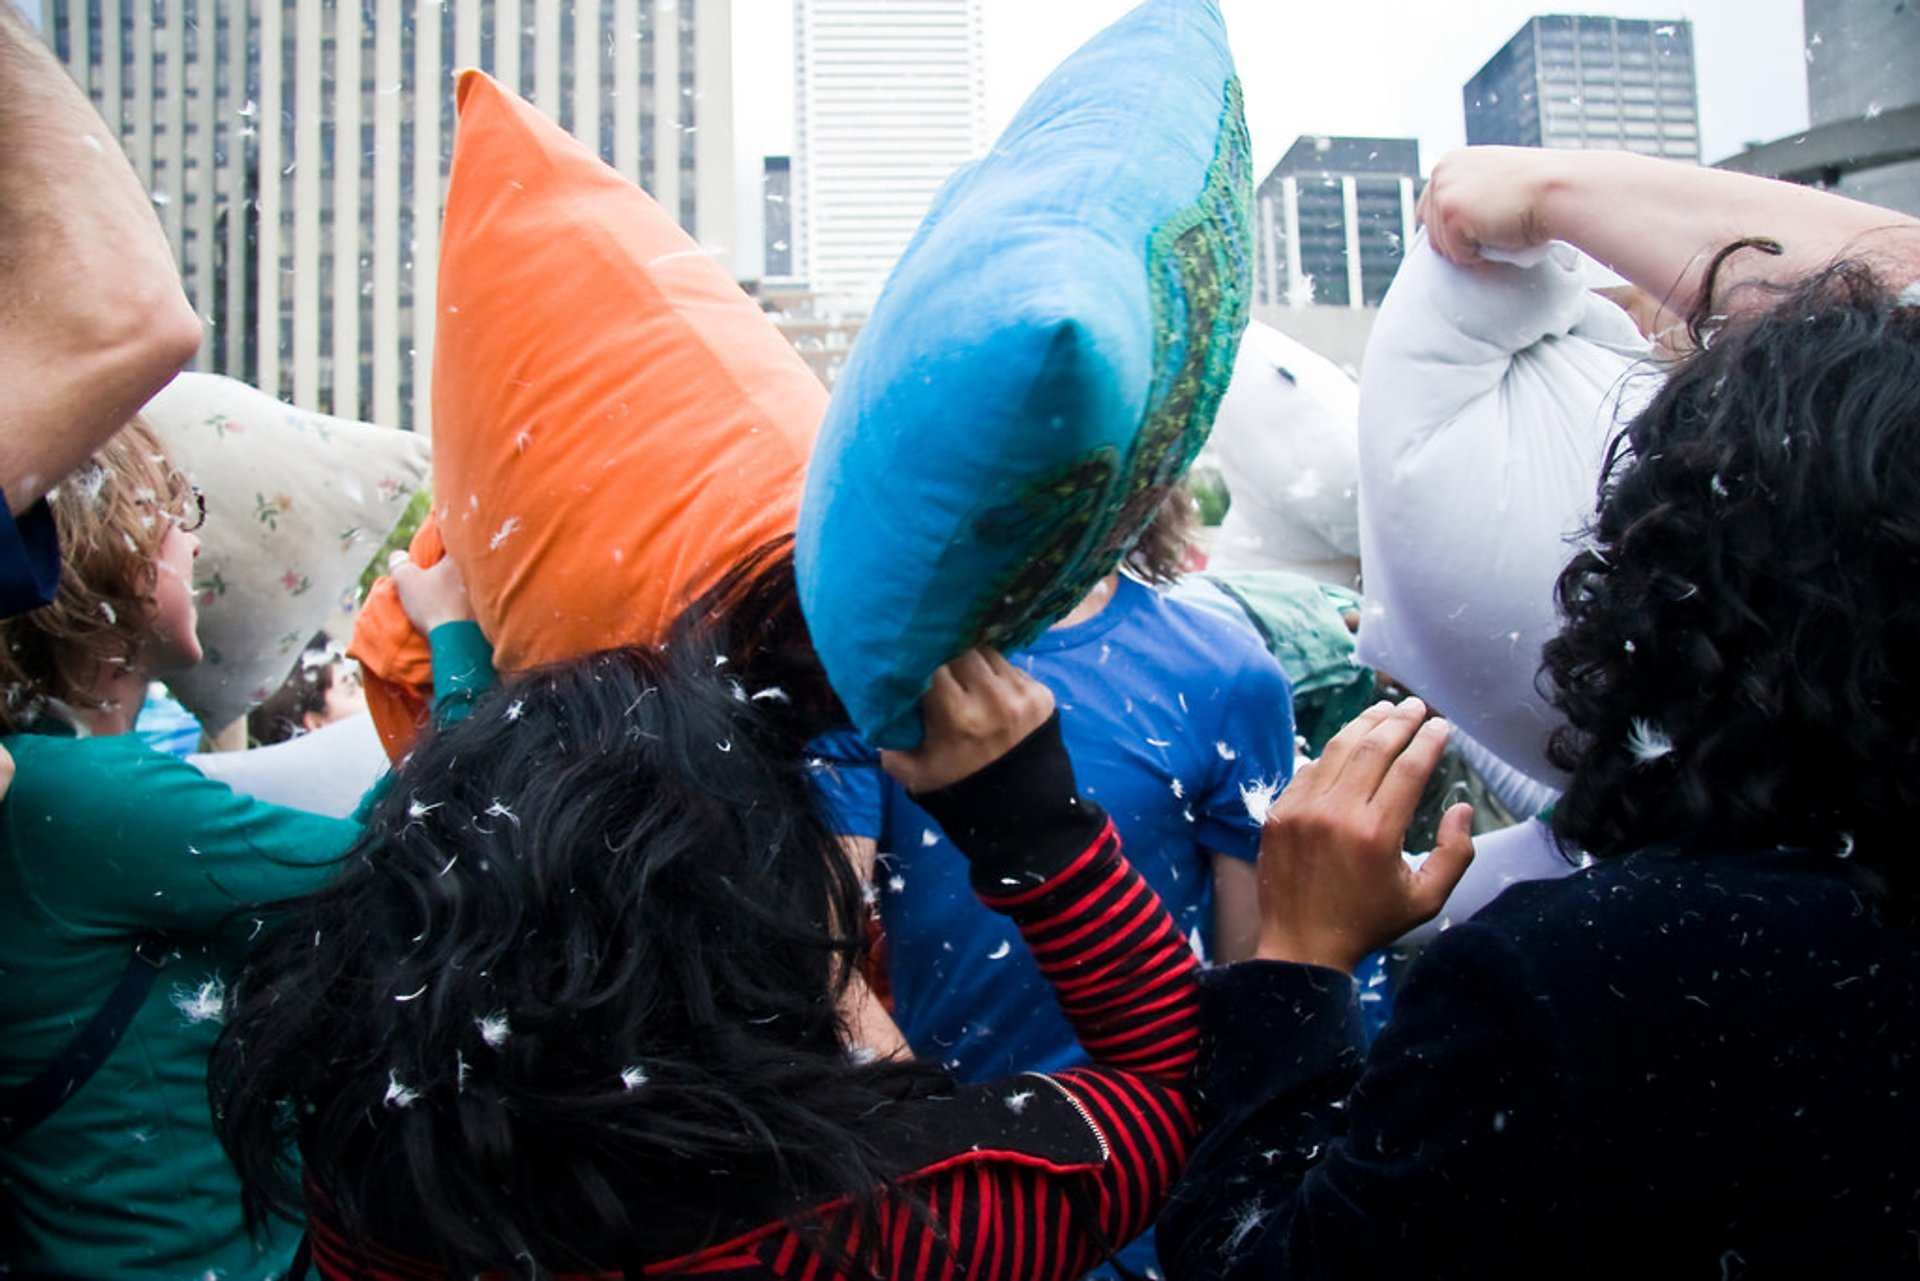 Giant Pillow Fight in Toronto - Best Season 2020